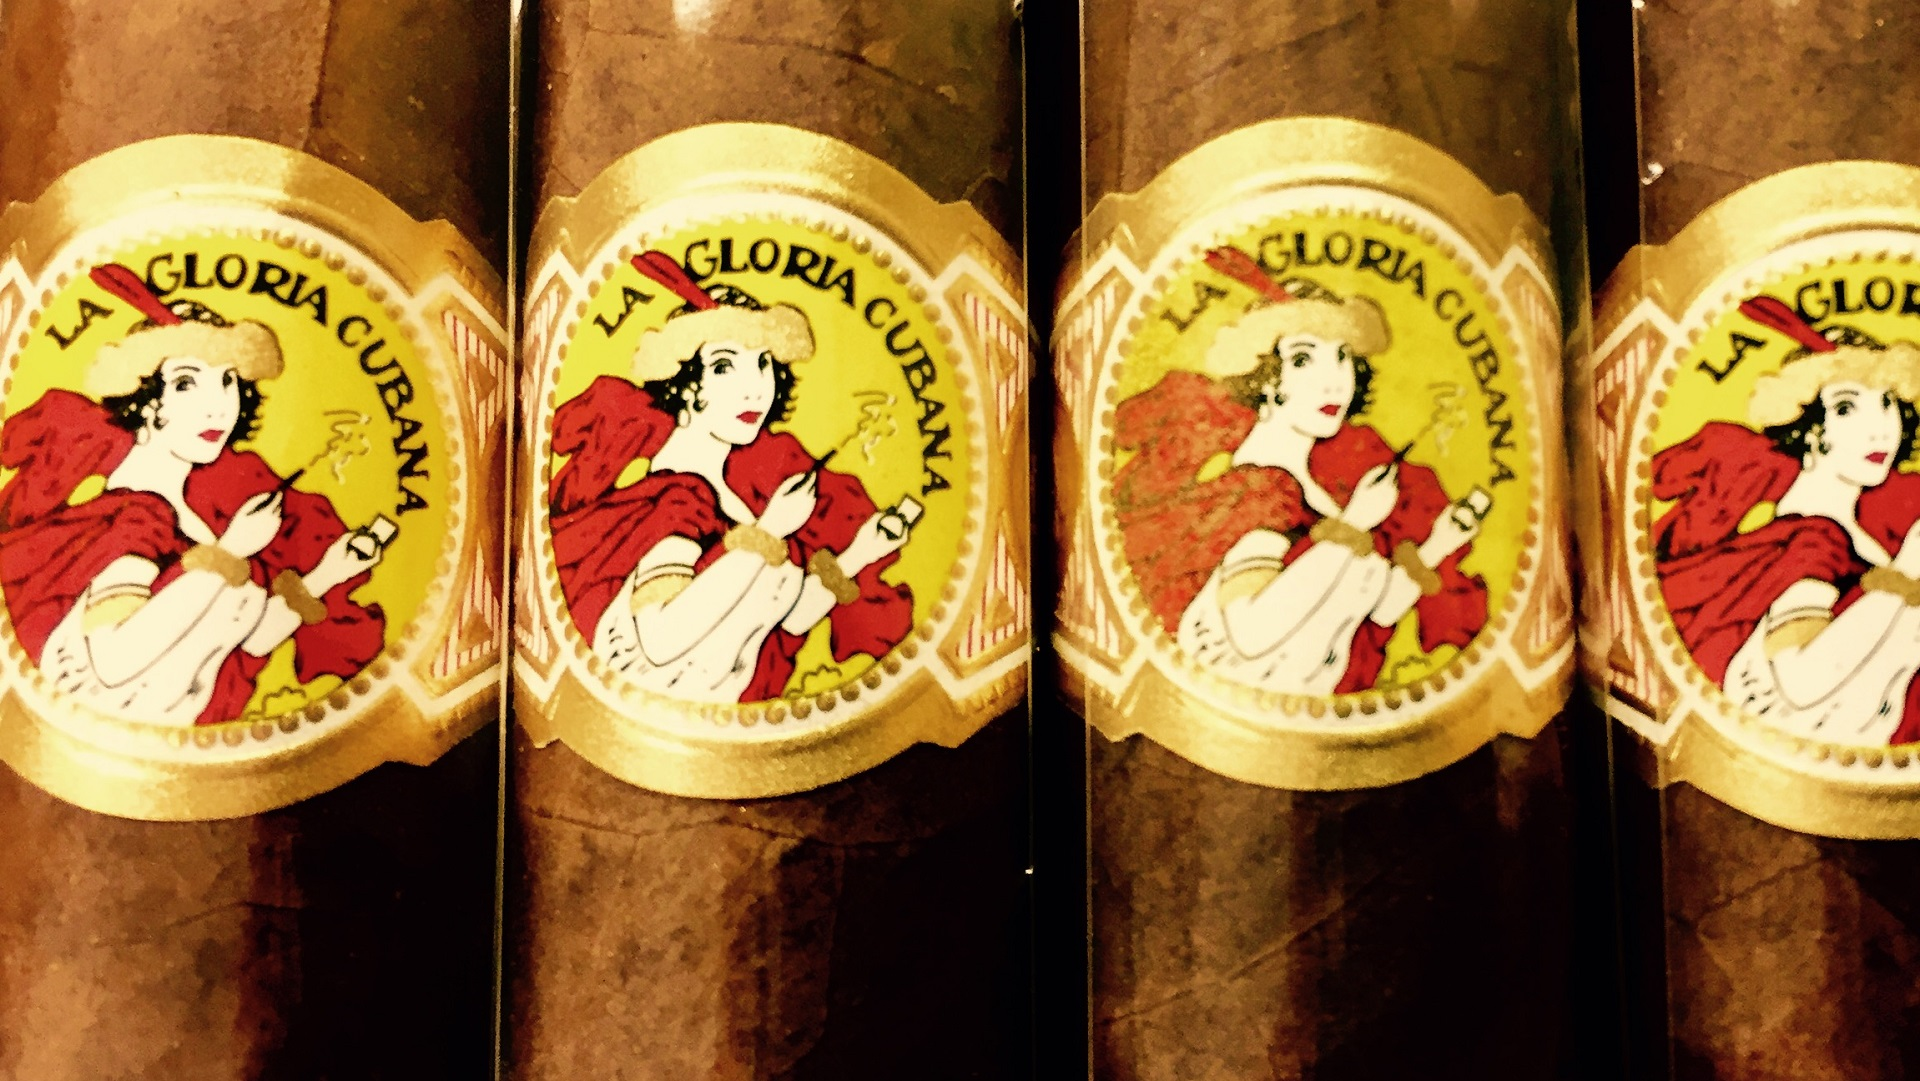 La Gloria Cubana Medaille D'or No.3, Natural - Box of 25 image